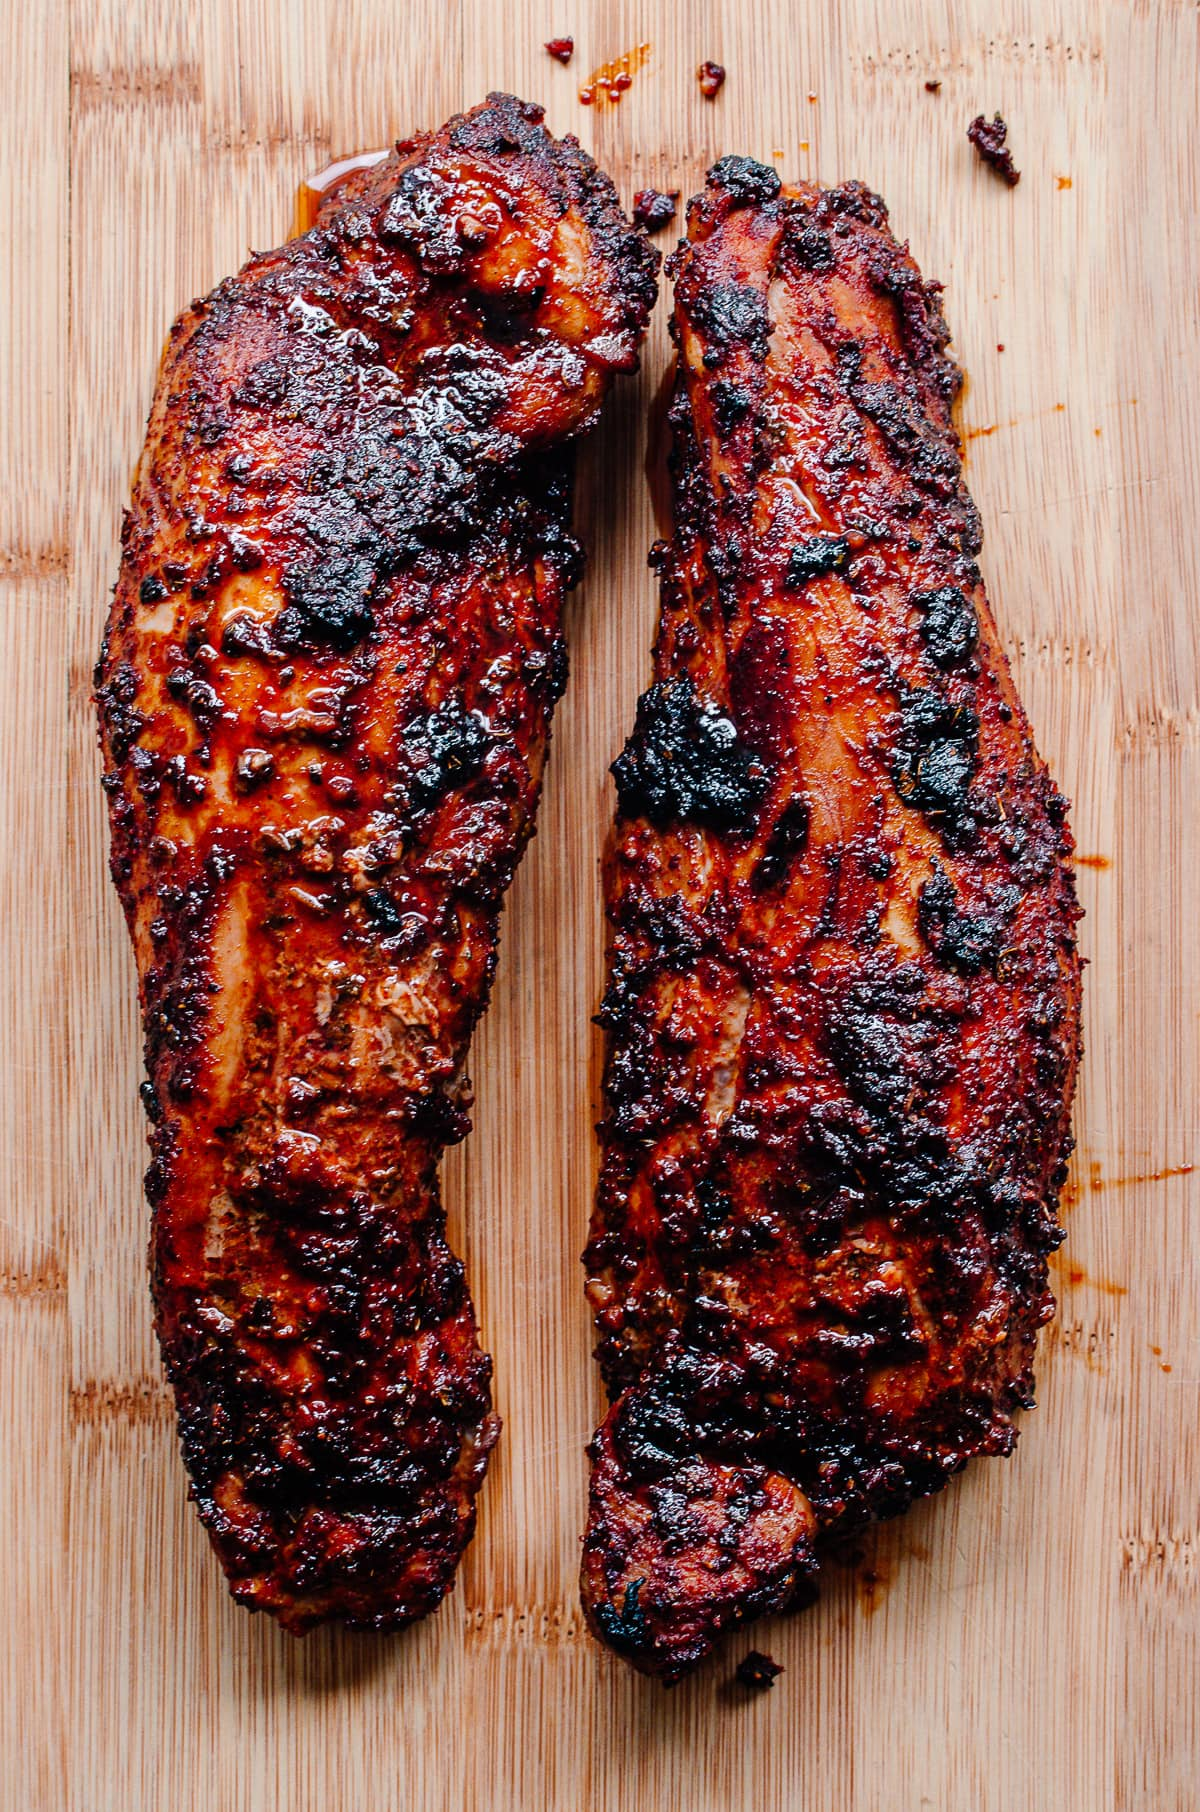 Two whole chile rubbed pork tenderloins on a wood surface.